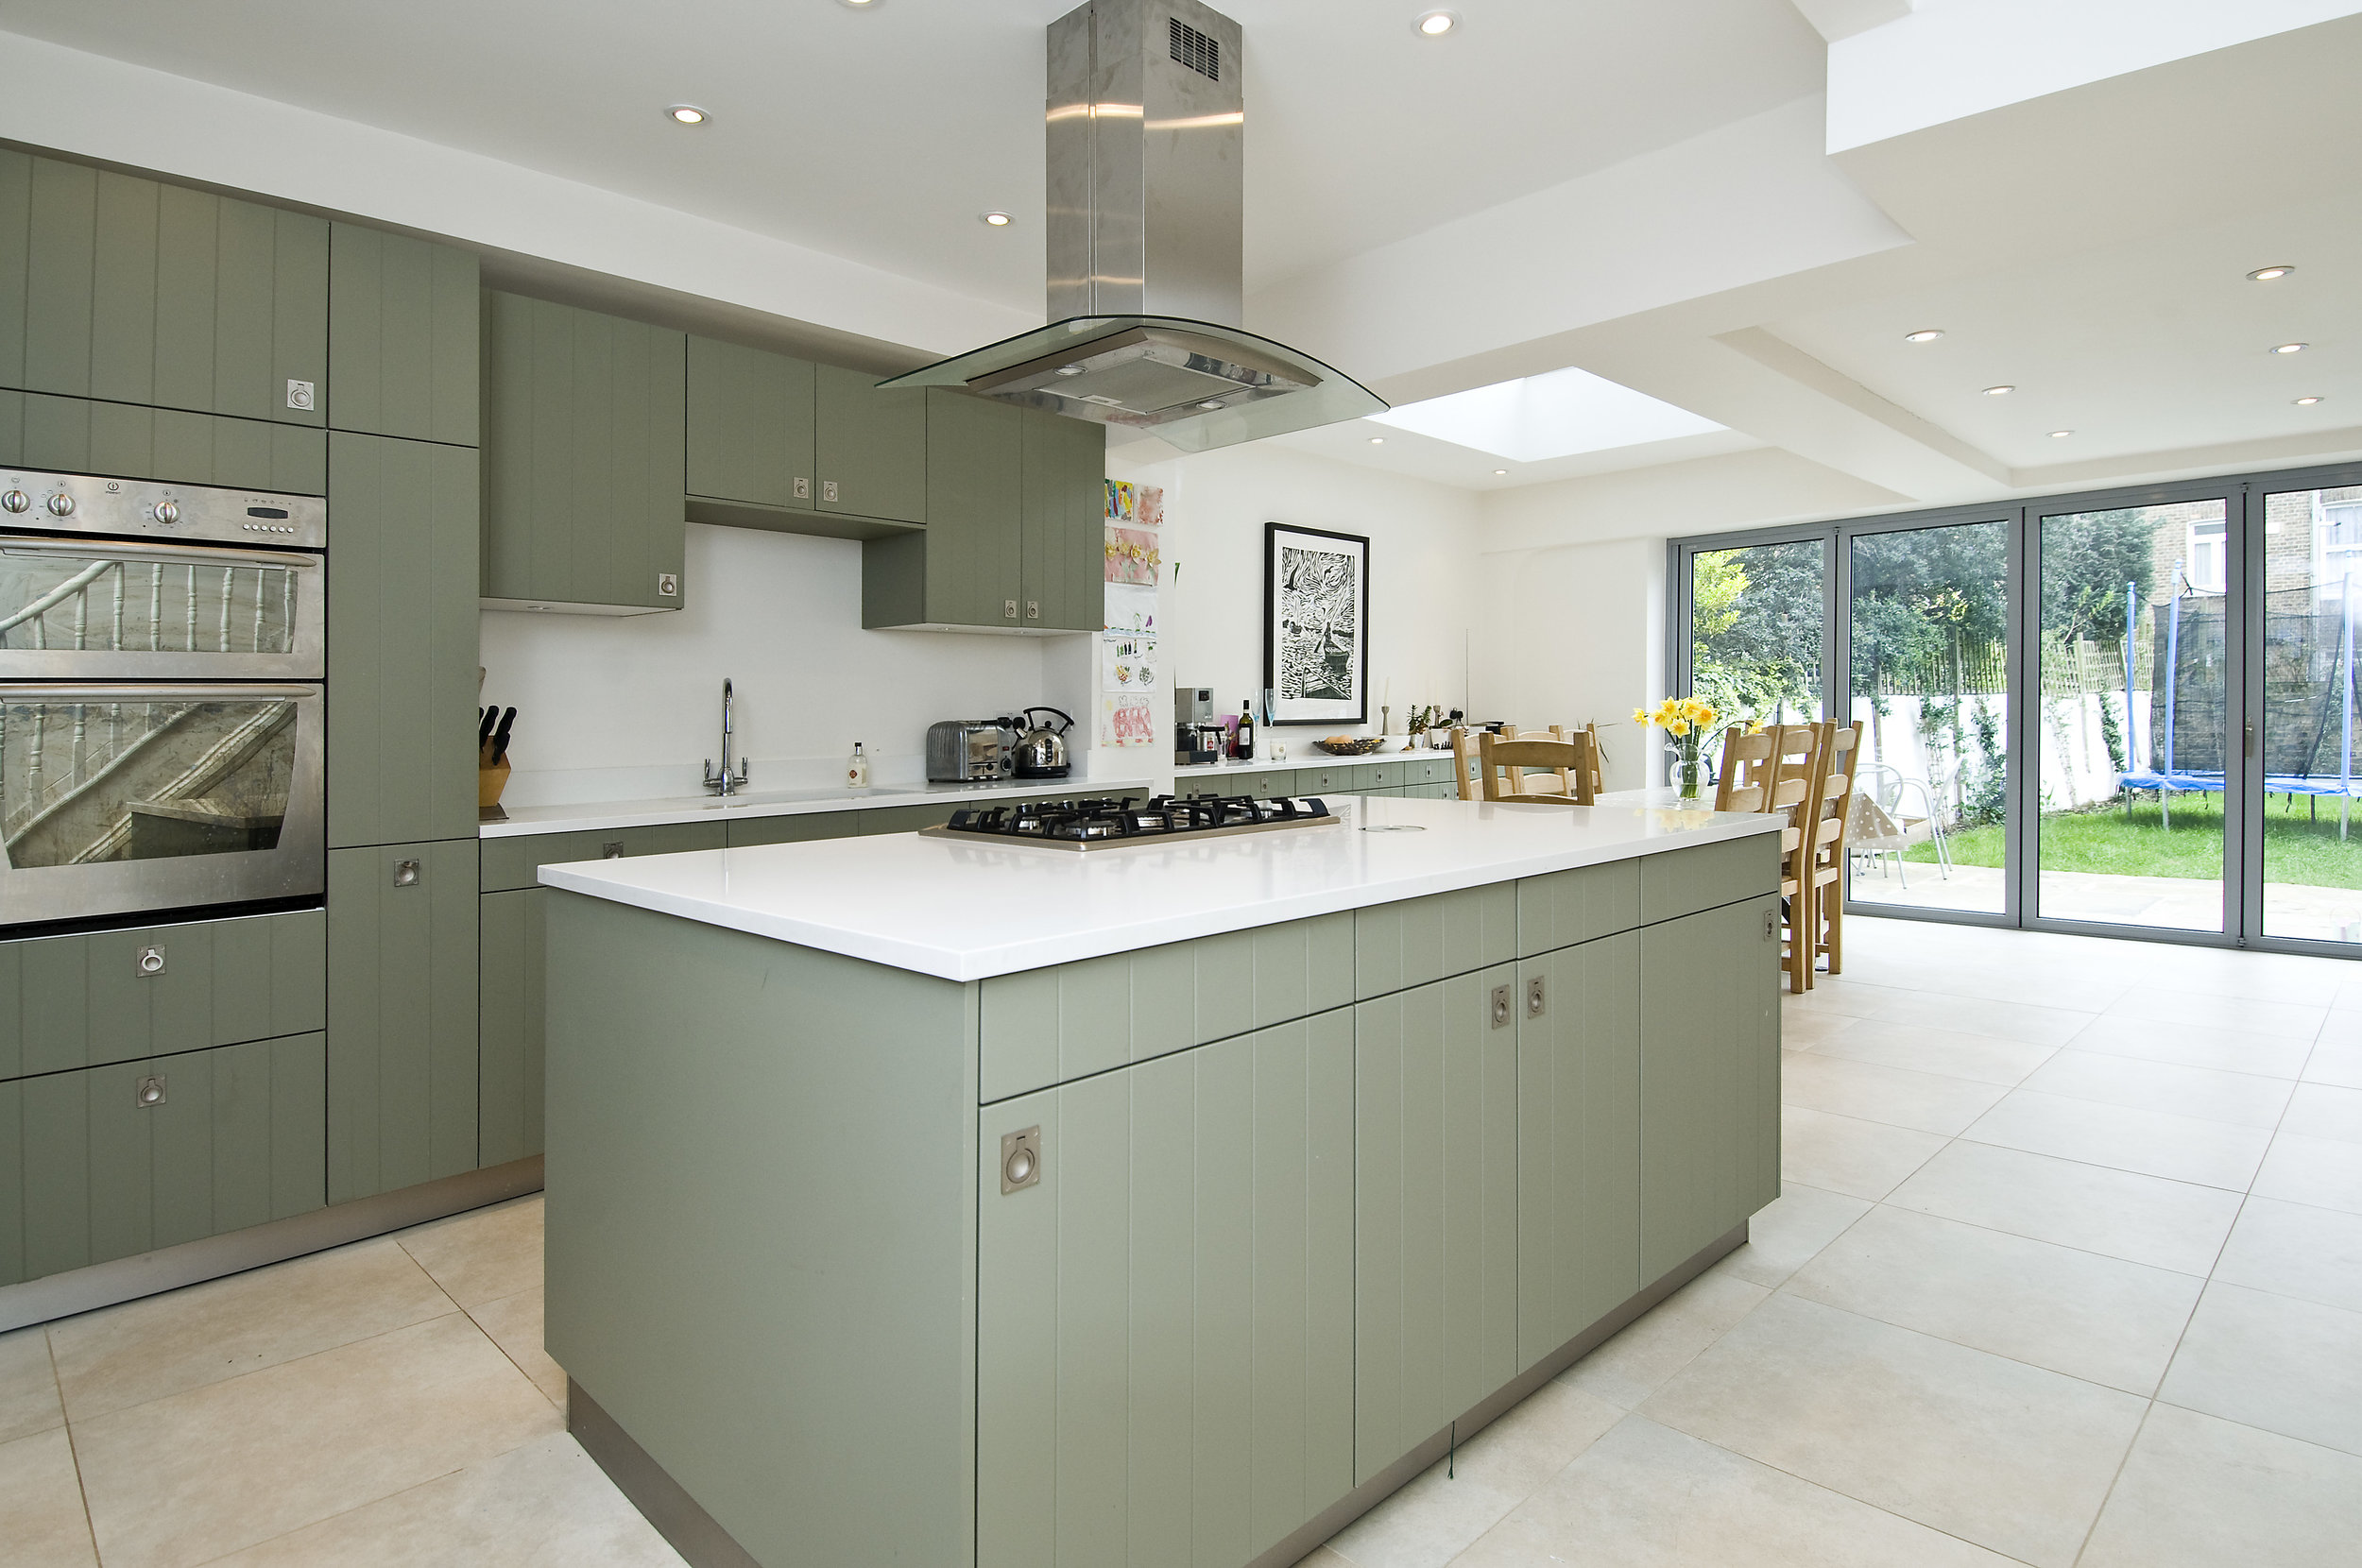 Basement Kitchen Extension, London W12, The Kitchen and Loft Company.